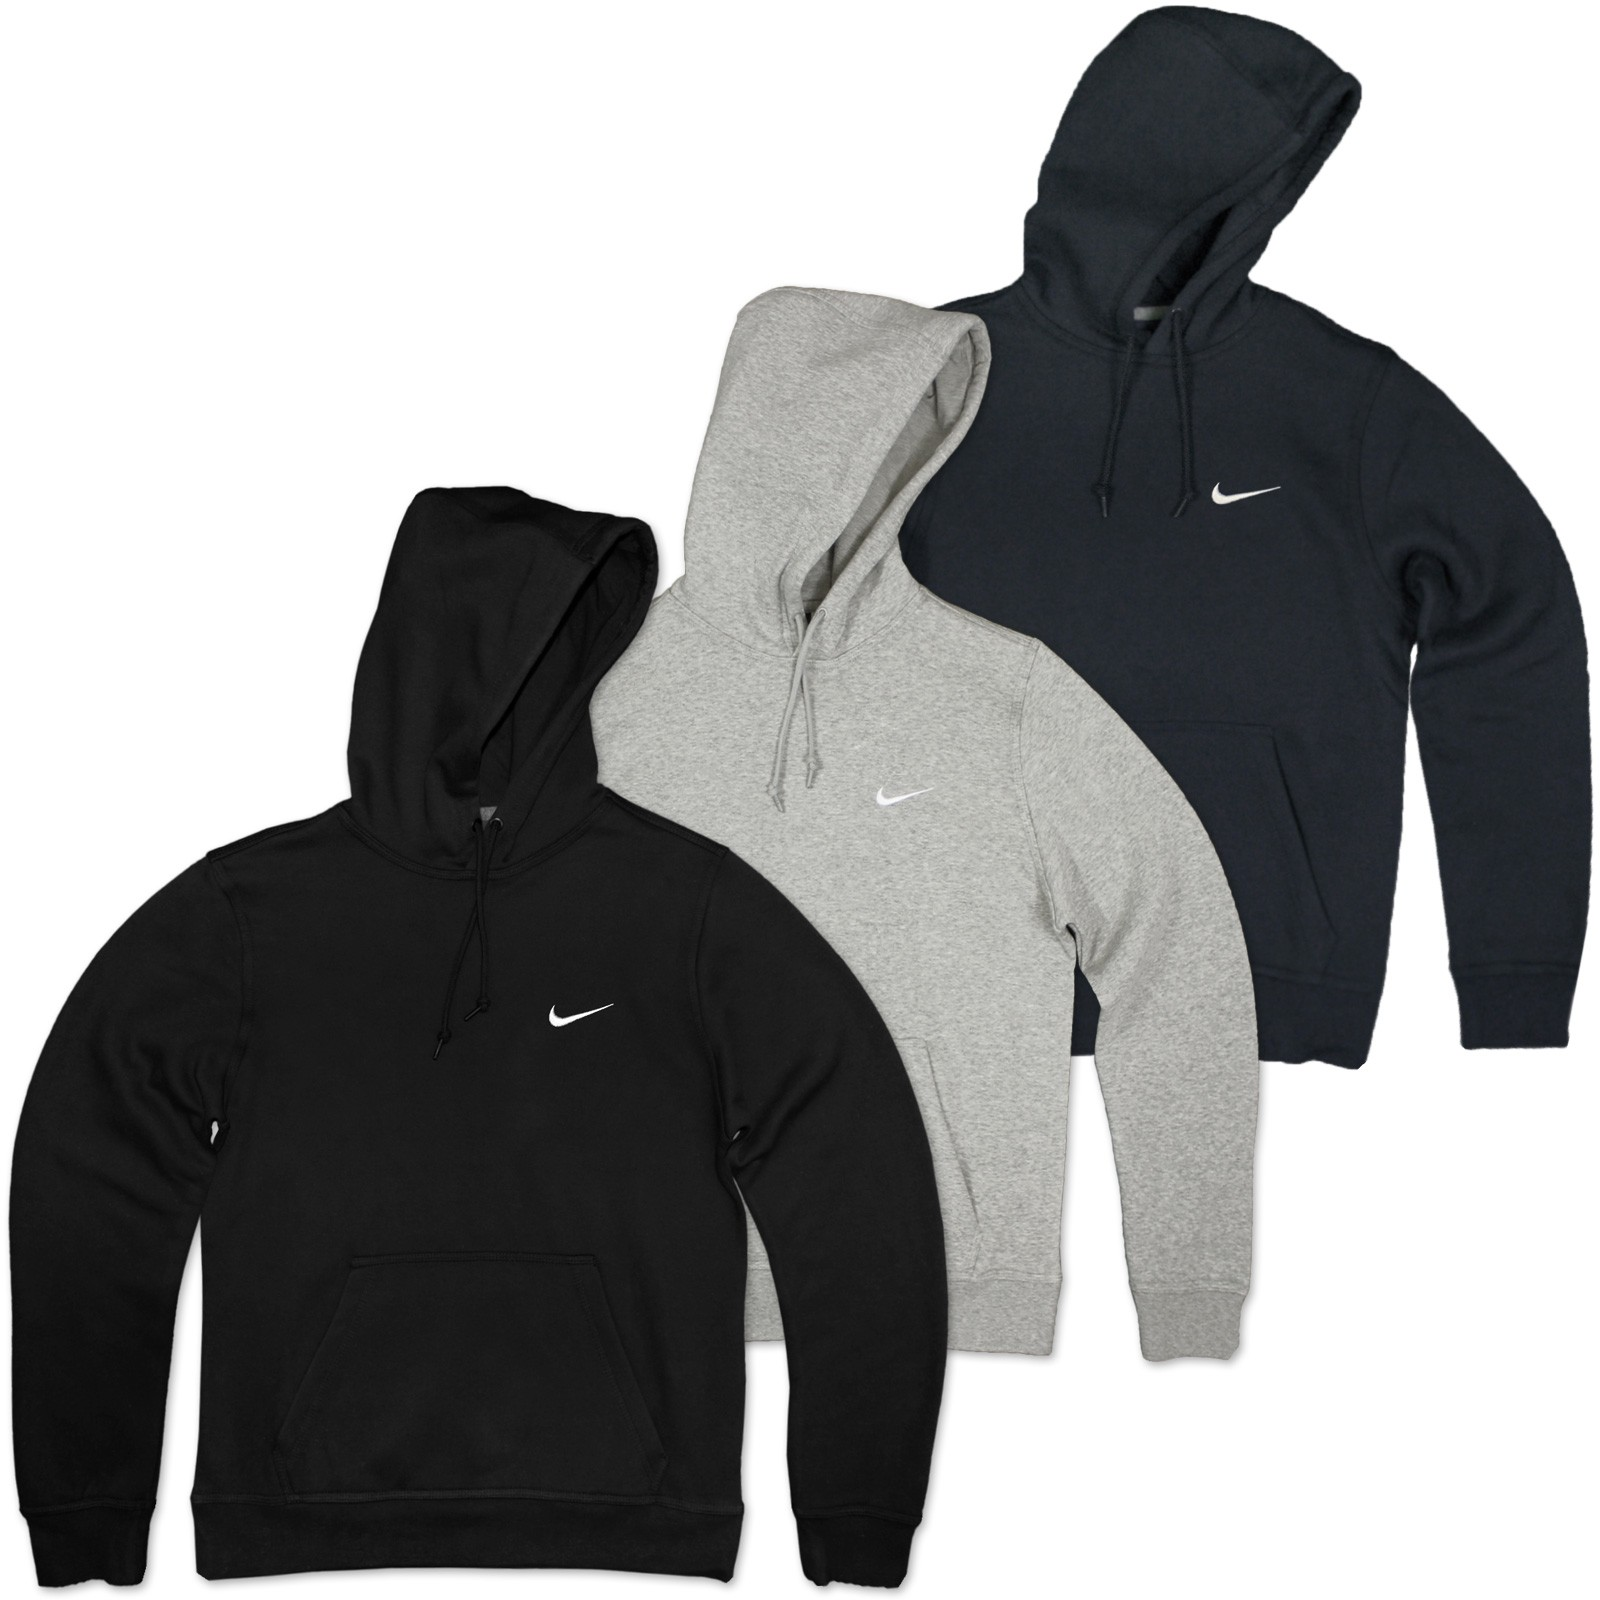 nike swoosh hoodie fleece kapuzen pulli sweatshirt jumper. Black Bedroom Furniture Sets. Home Design Ideas